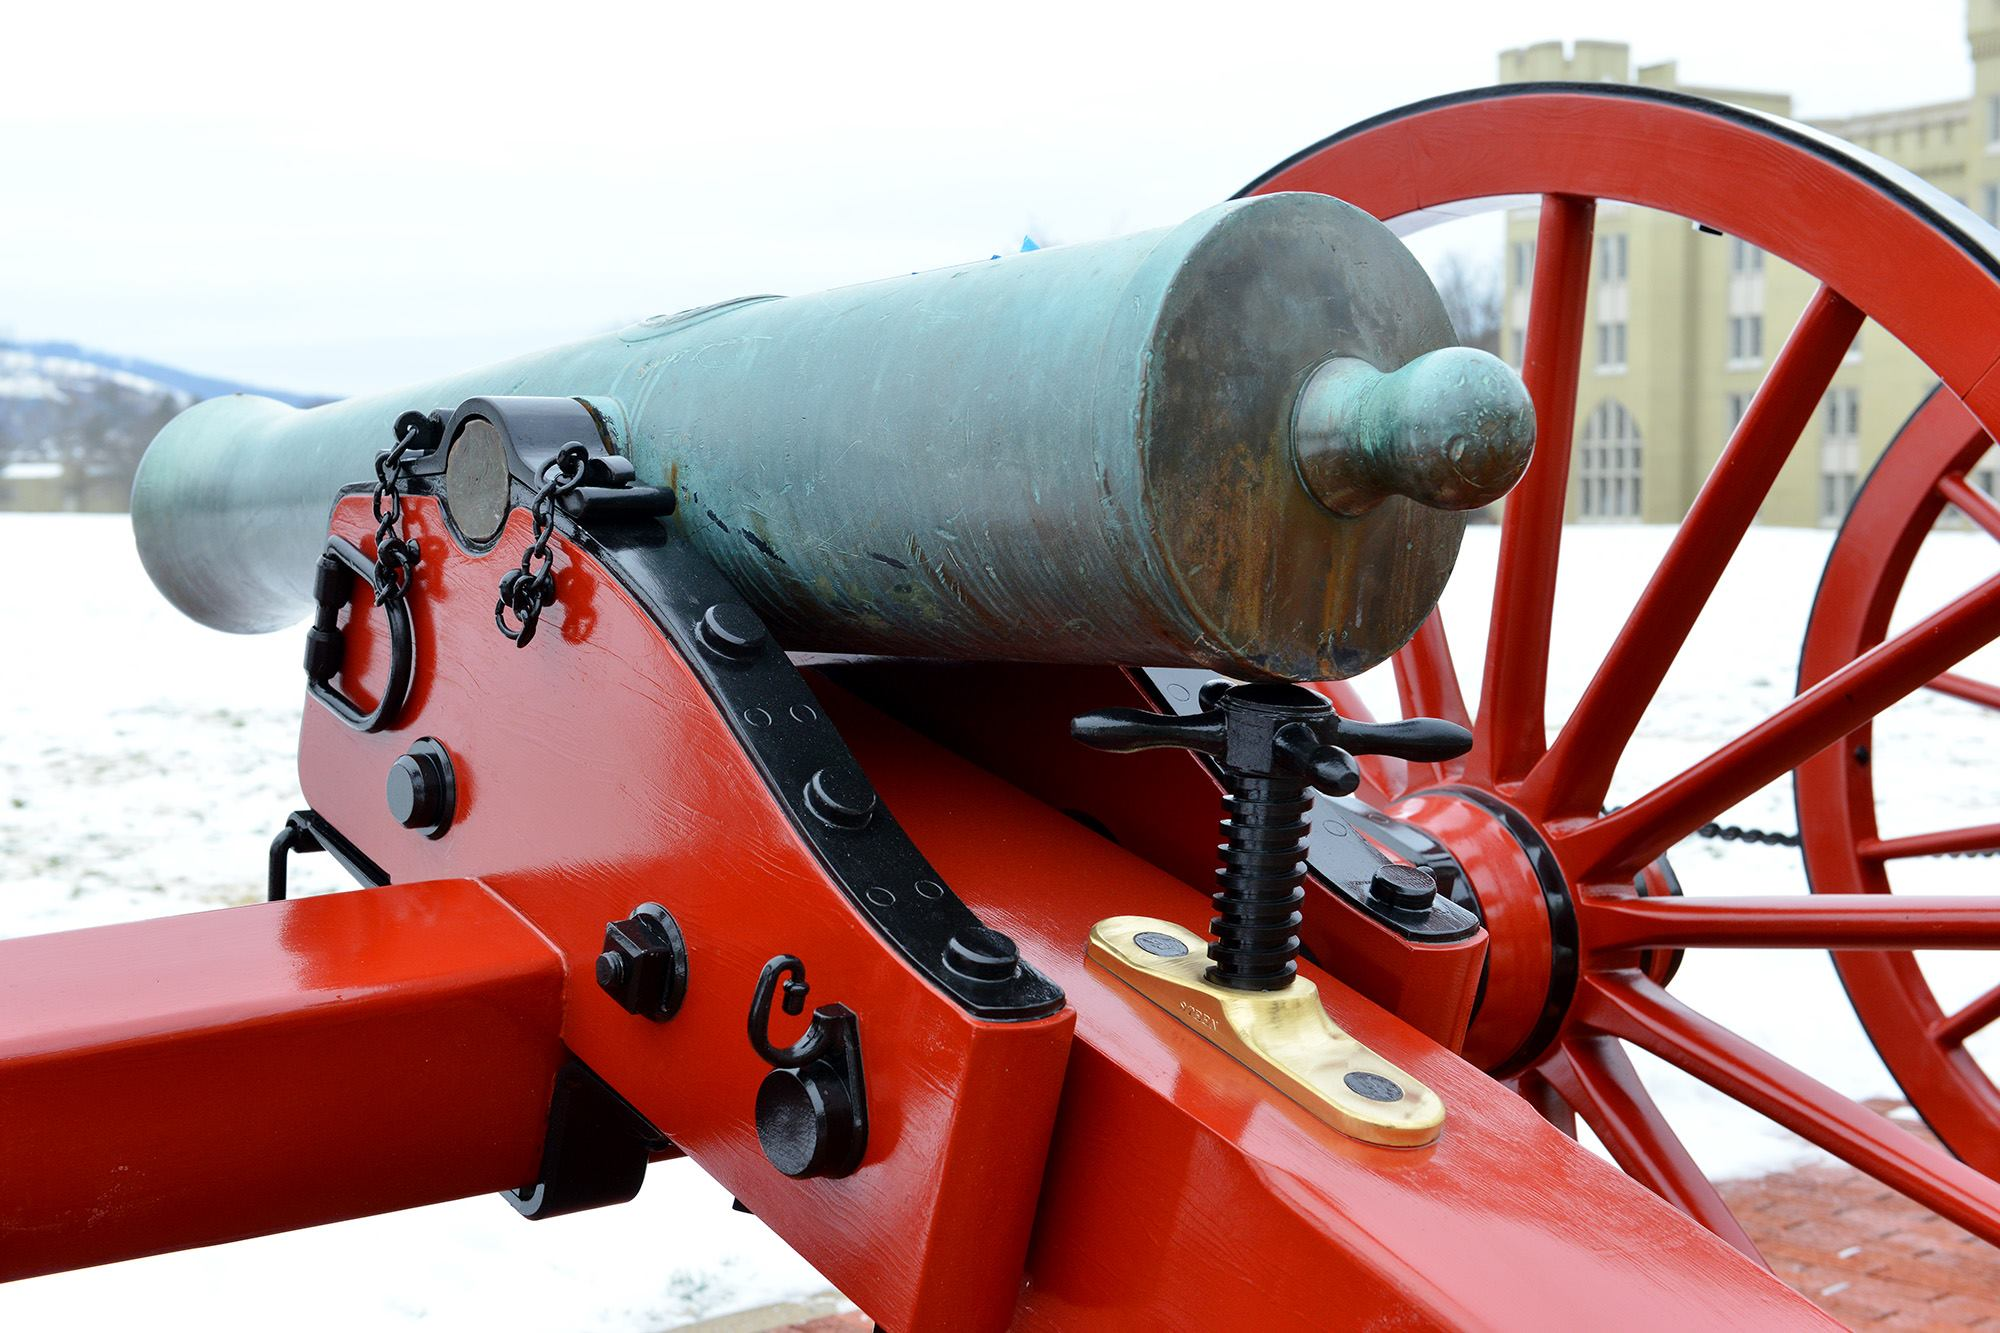 The artillery pieces, designed to be scaled-down models of the standard Army field guns of the day, are more than 150 years and their carriages have been replaced for what the school hopes is the last time